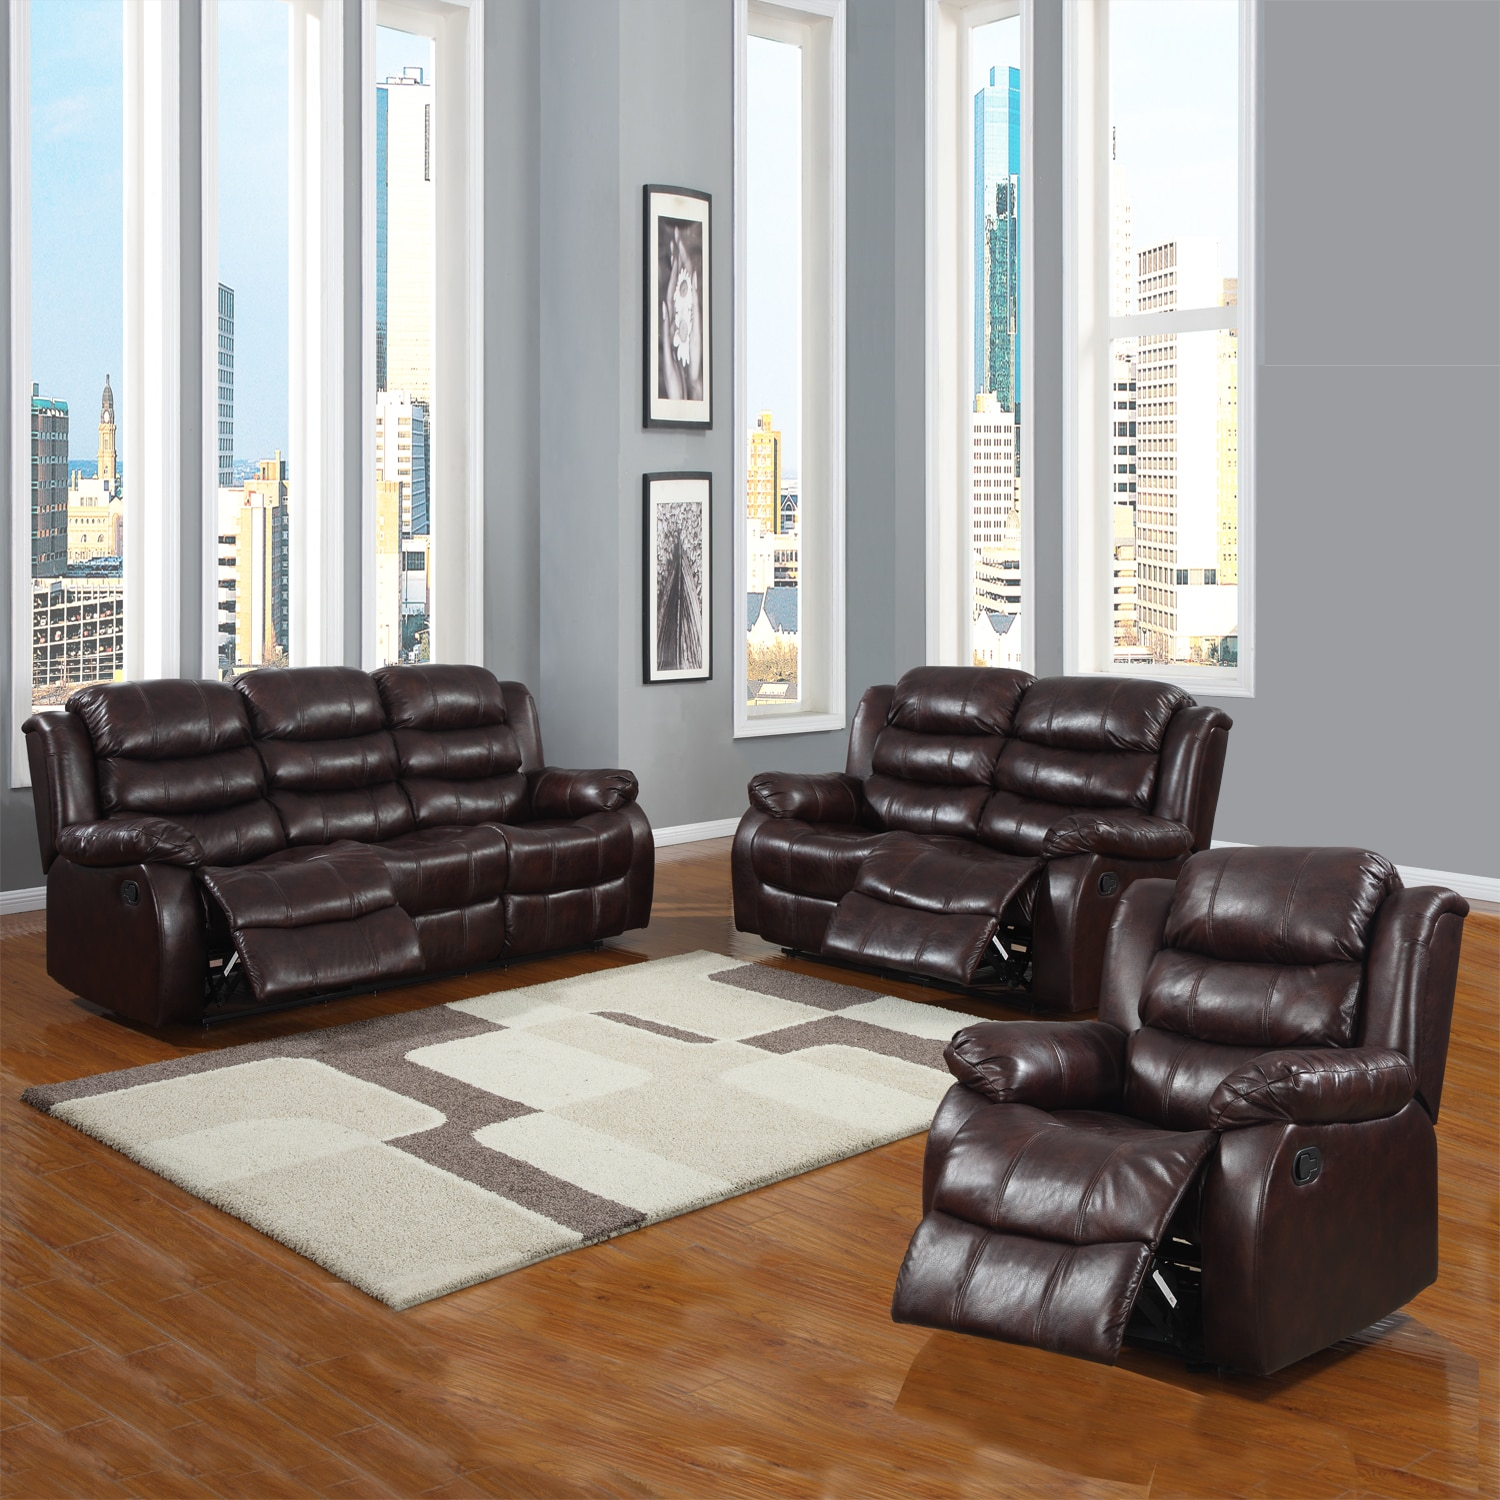 3 piece reclining living room set buxton burgundy polished microfiber 3 reclining 23988